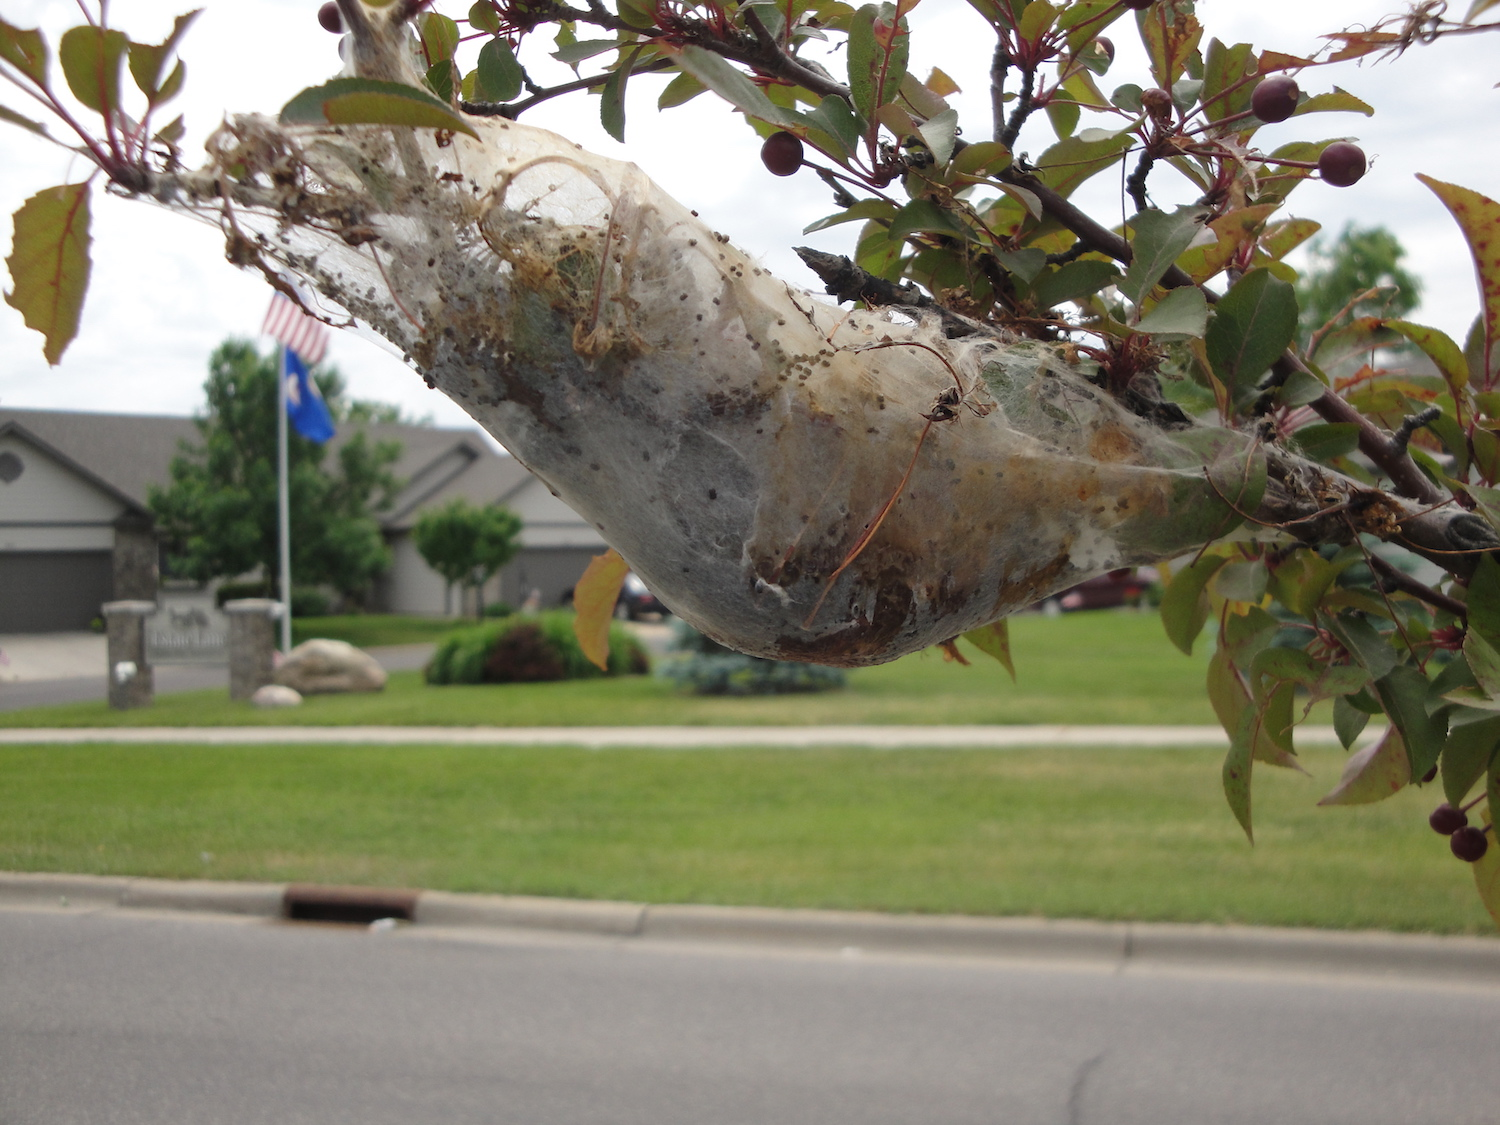 Easter tent caterpillar nest